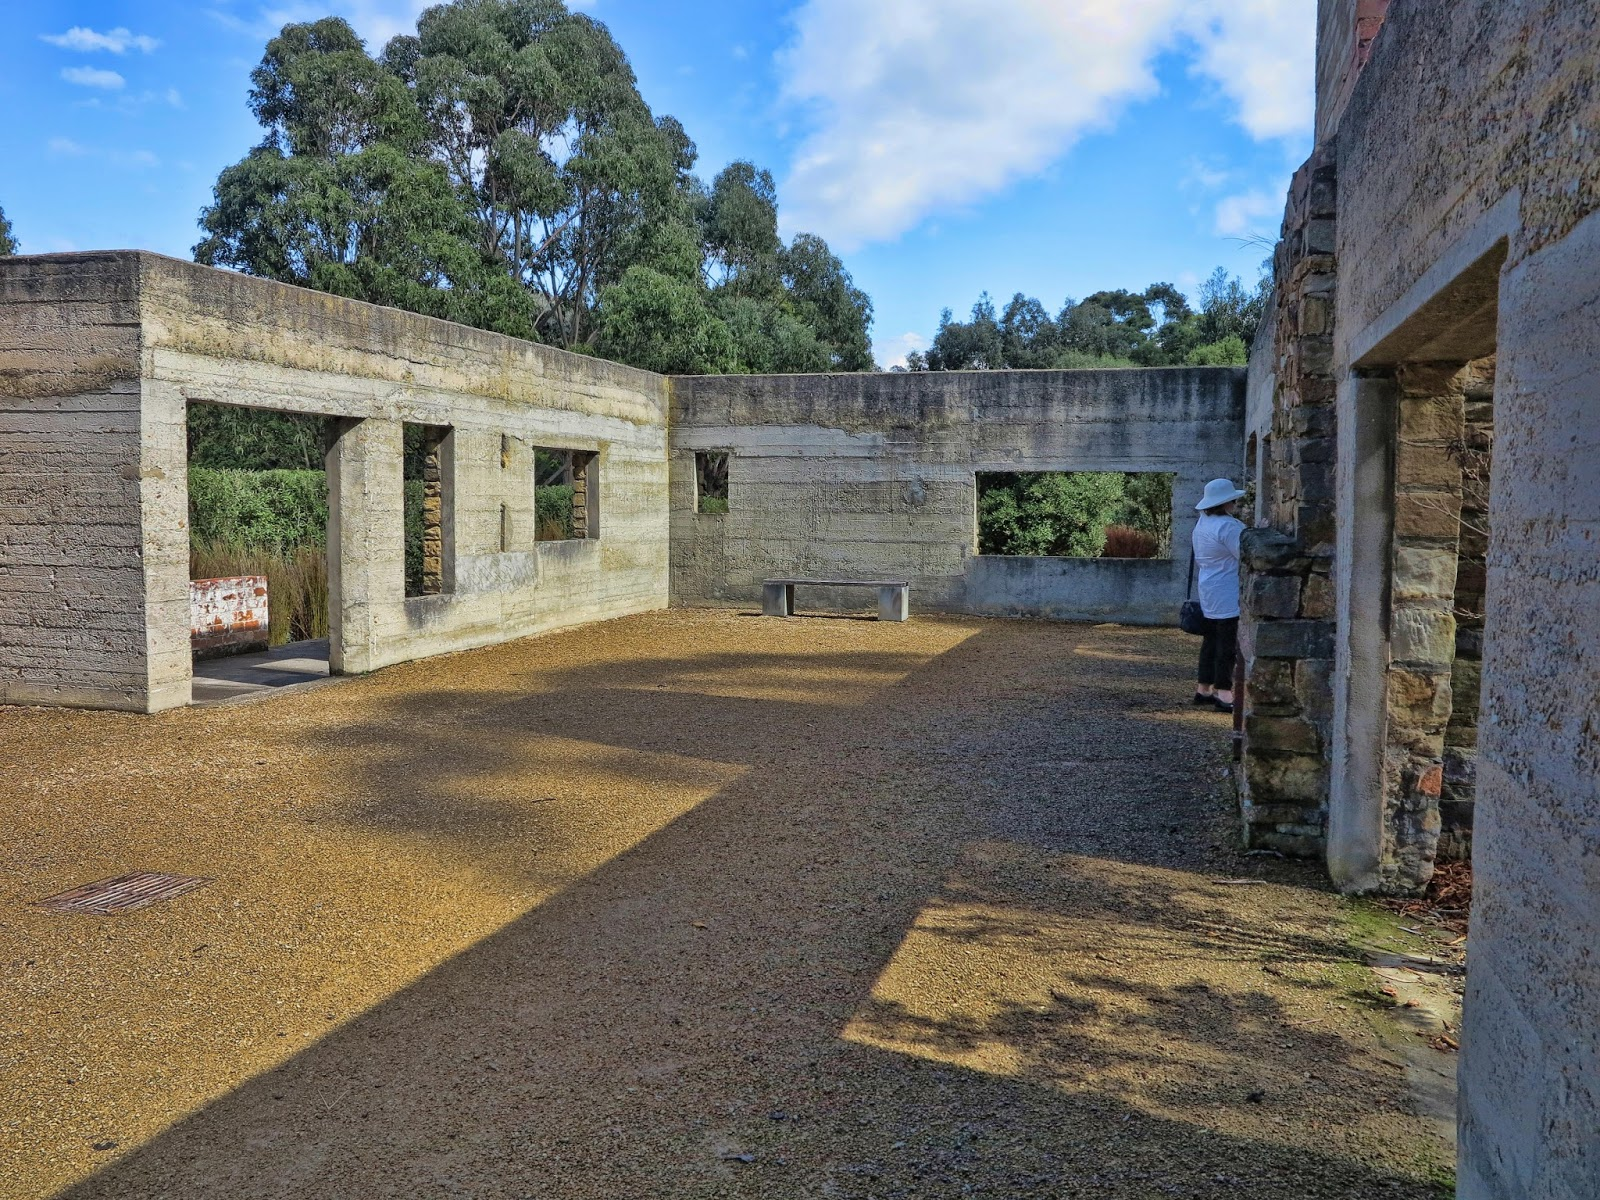 Chasing ghosts in tasmania port arthur - Fear of small space pict ...